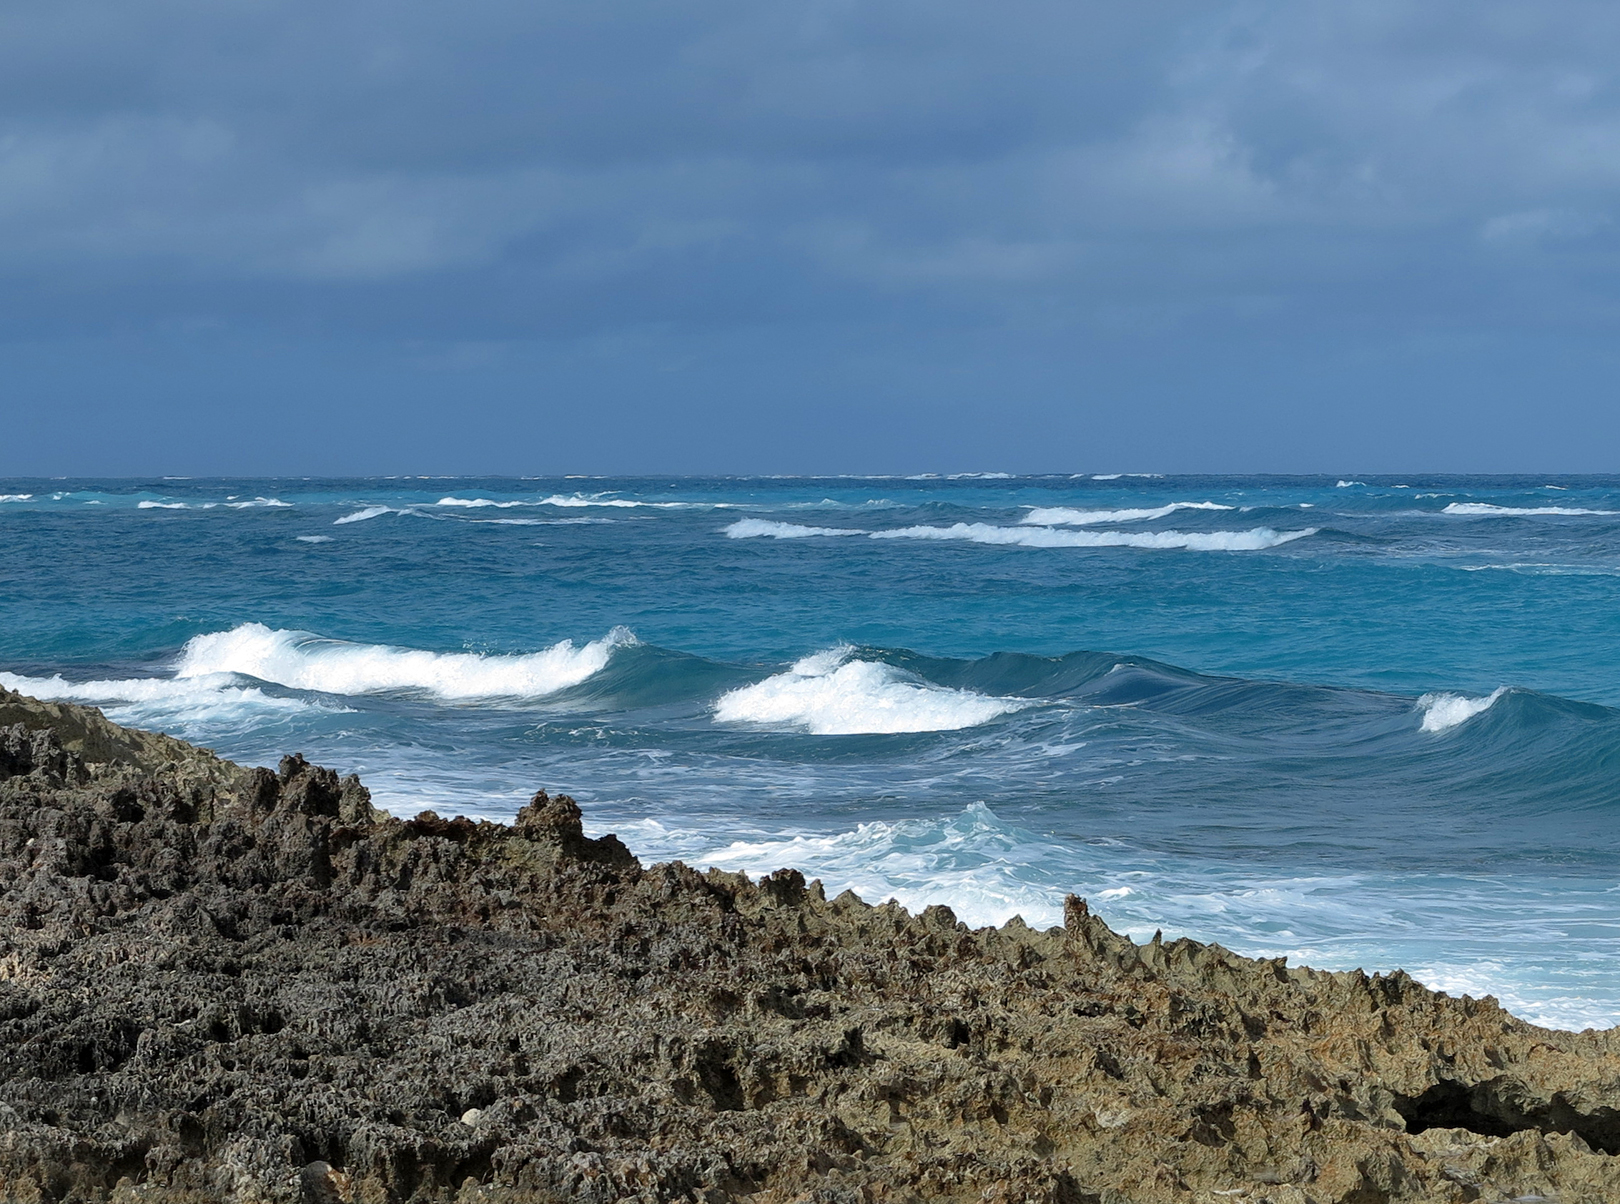 Stormy day on Green Turtle Cay